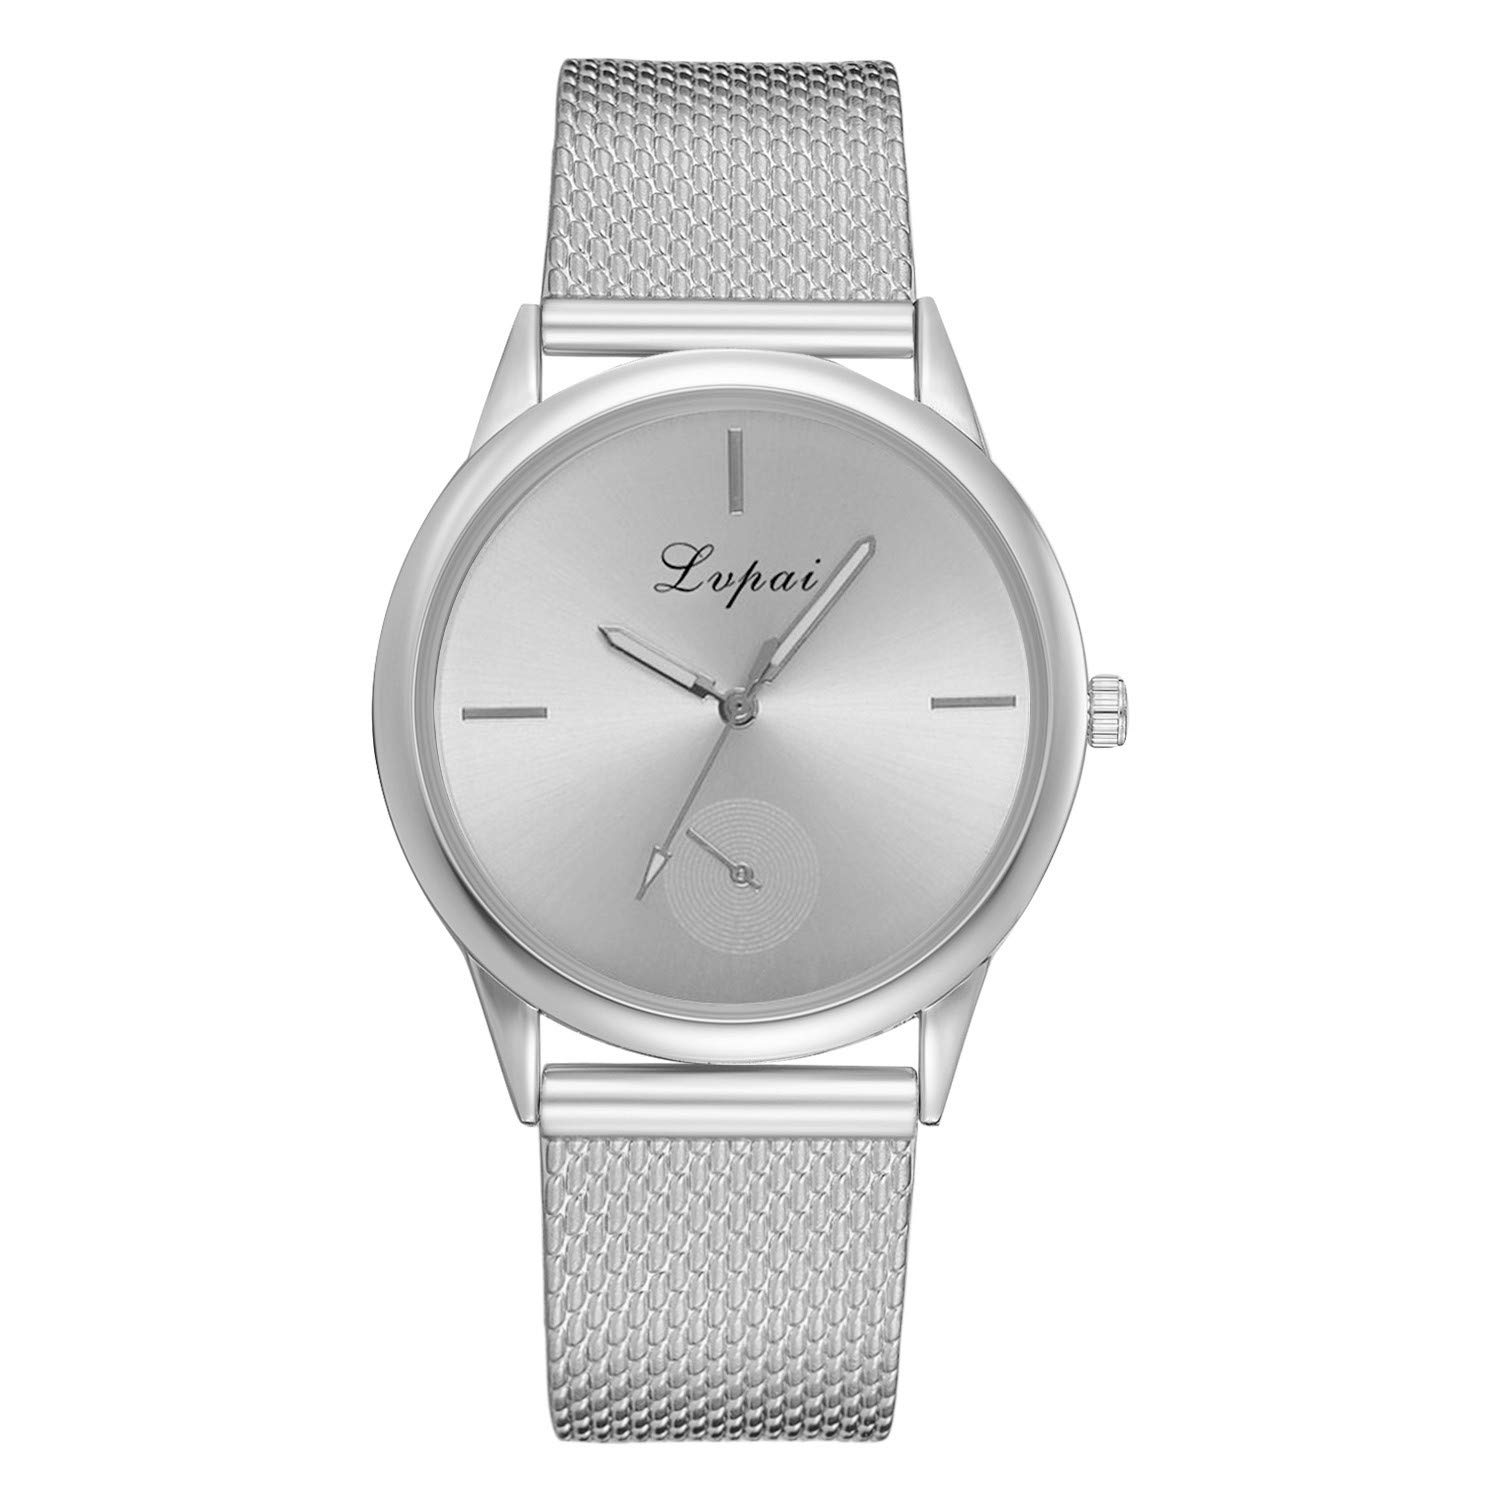 Belt Watches for Women,Women's Casual Quartz Silicone Strap Band Watch Analog Wrist Watch,Girls' Wrist Watches,Silver,Women Watches Waterproof